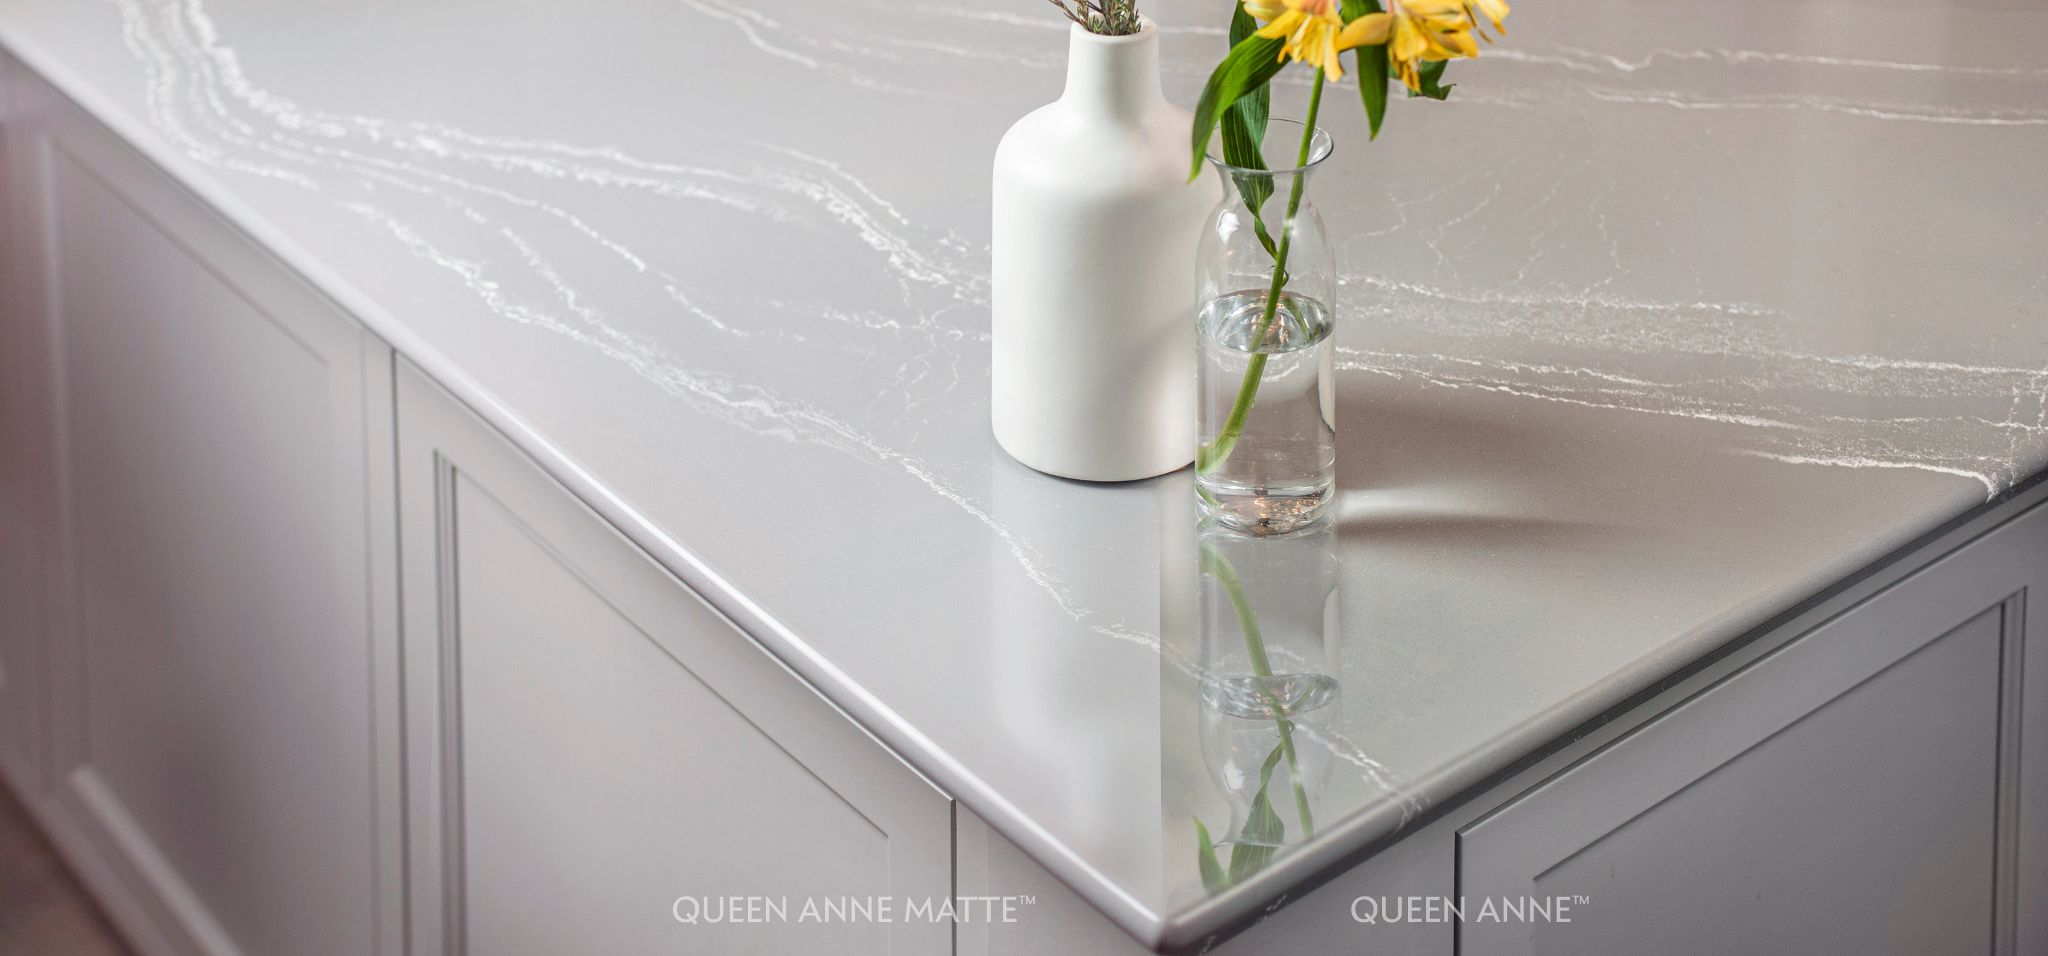 cambria-queen-anne-quartz-countertops-kitchen